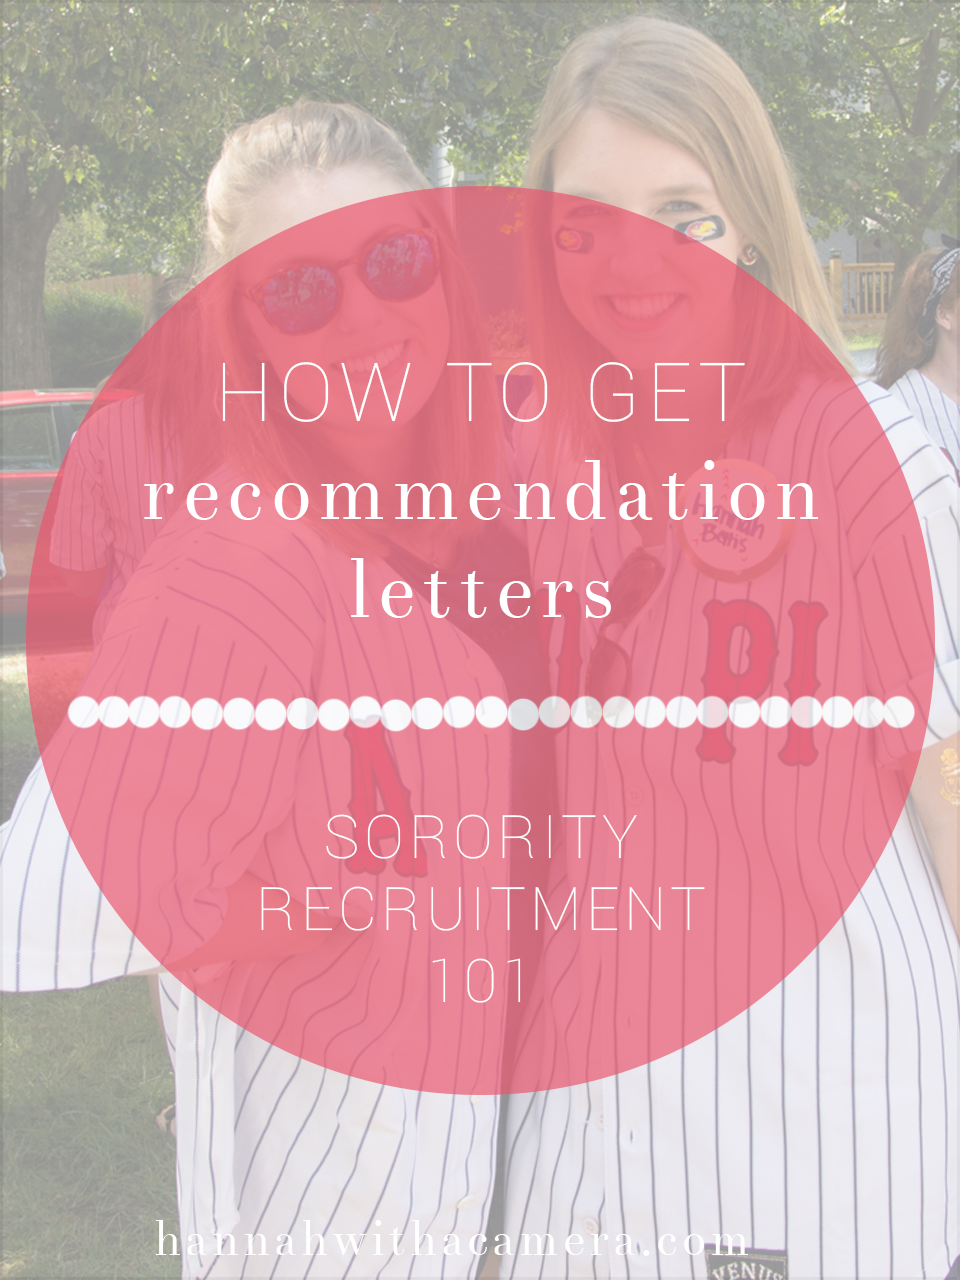 How to get recommendation letters sorority recruitment 101 thecheapjerseys Image collections